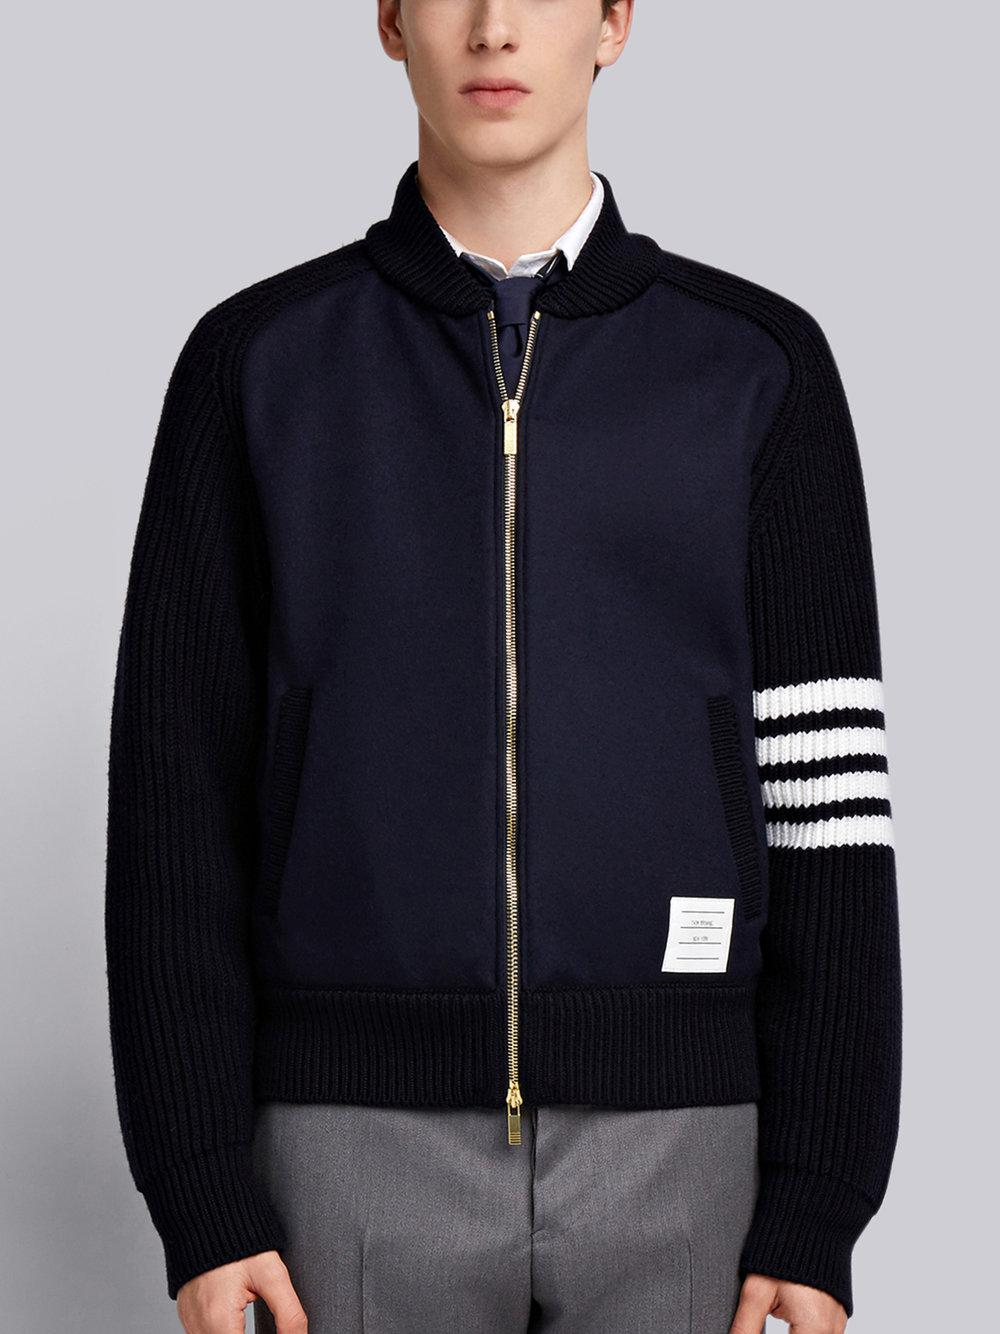 Cheap Sale Manchester Great Sale Chunky Saddle Sleeve Cashmere Wool Bomber - Blue Thom Browne Cheap Usa Stockist r4QG07q